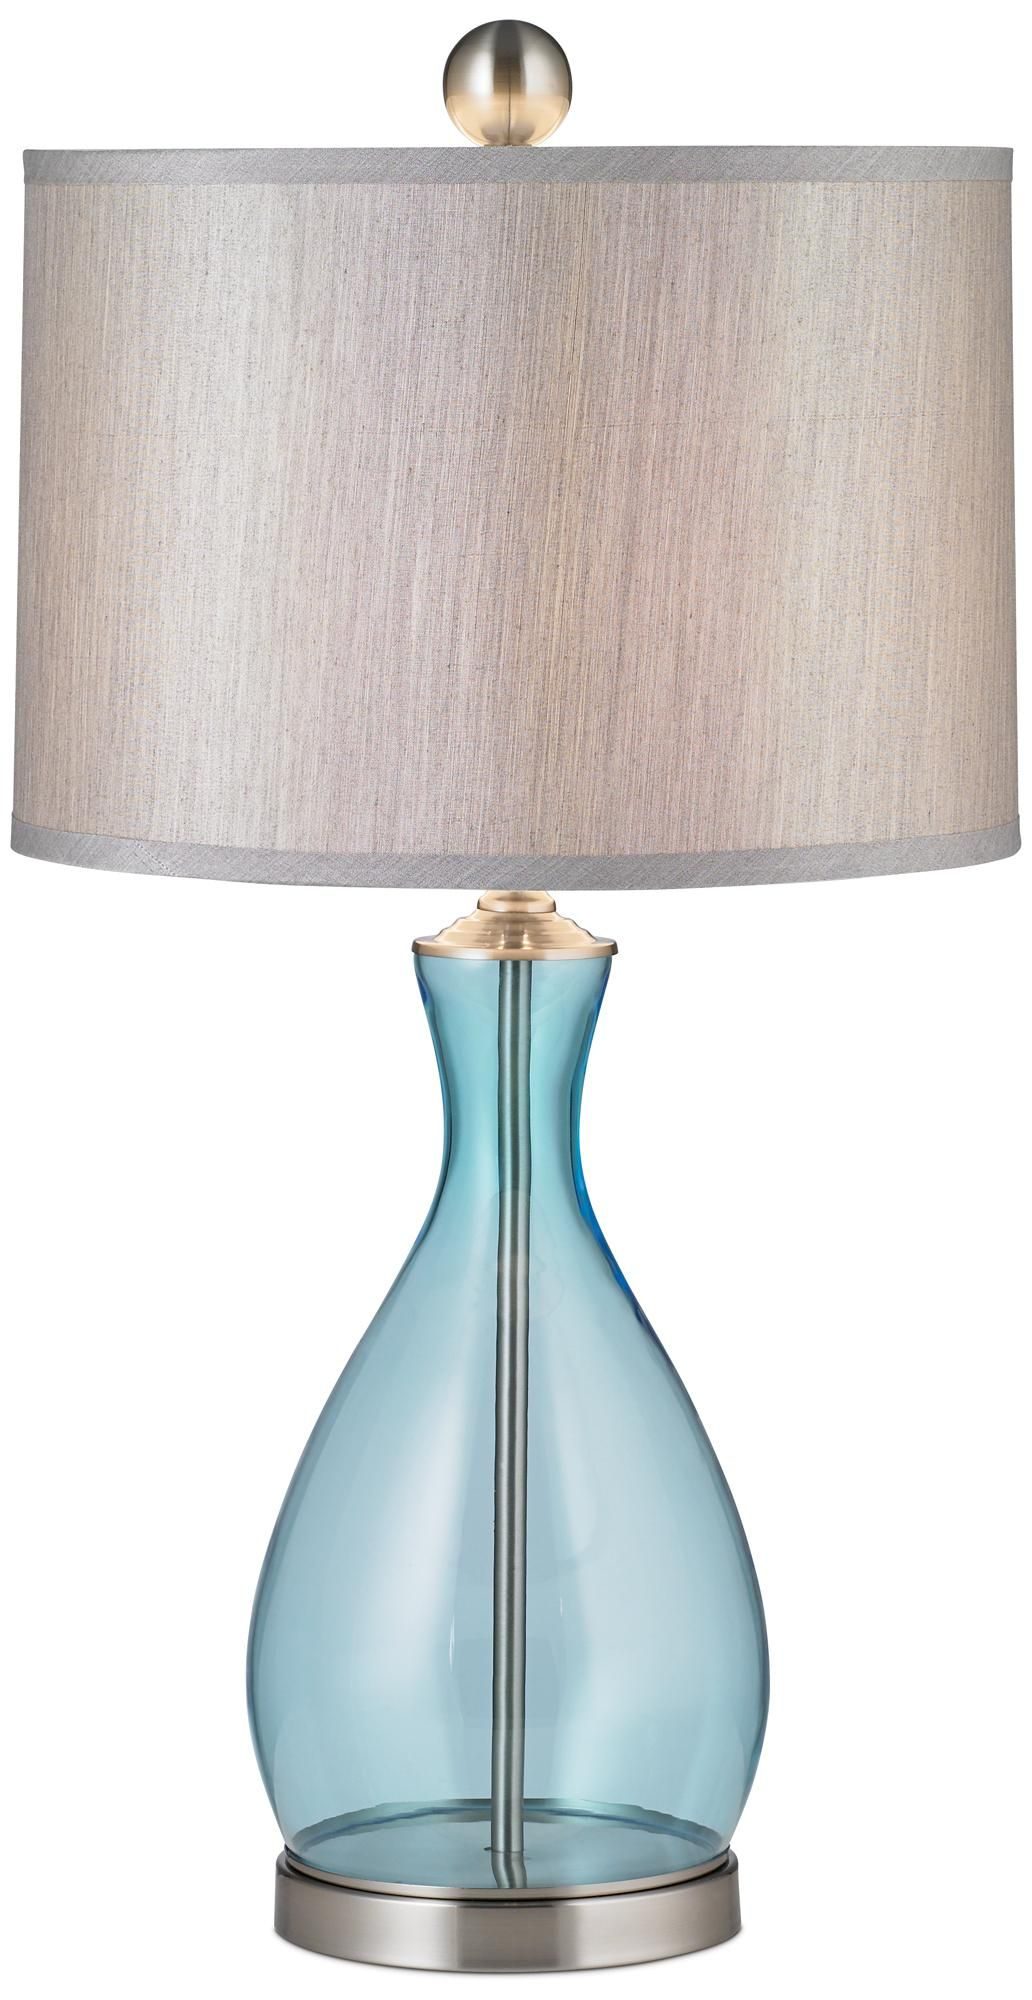 Uttermost Meena Blue Glass Table Lamp F1471 Lamps Plus Glass Table Lamp Table Lamp Lamp